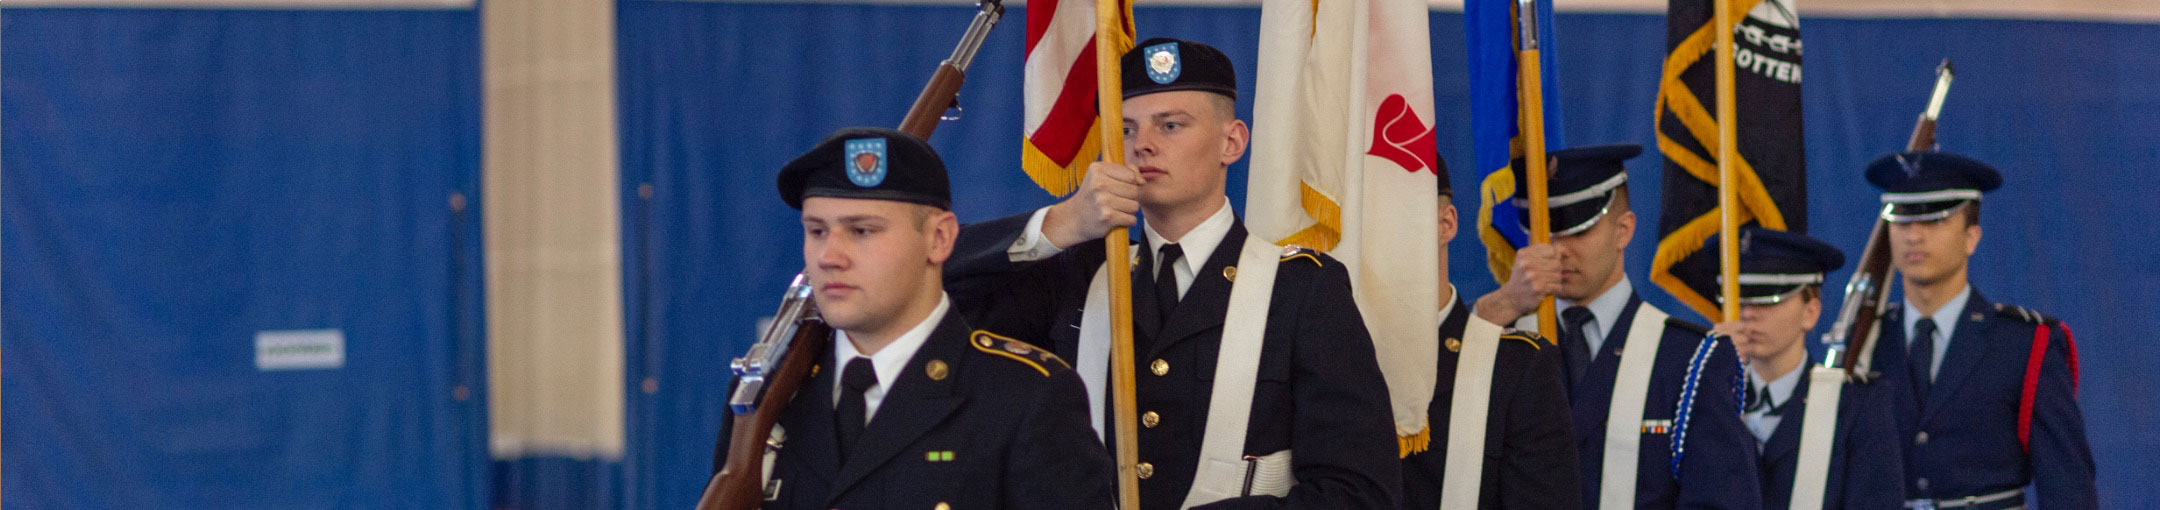 A group of RIT ROTC students in uniform.